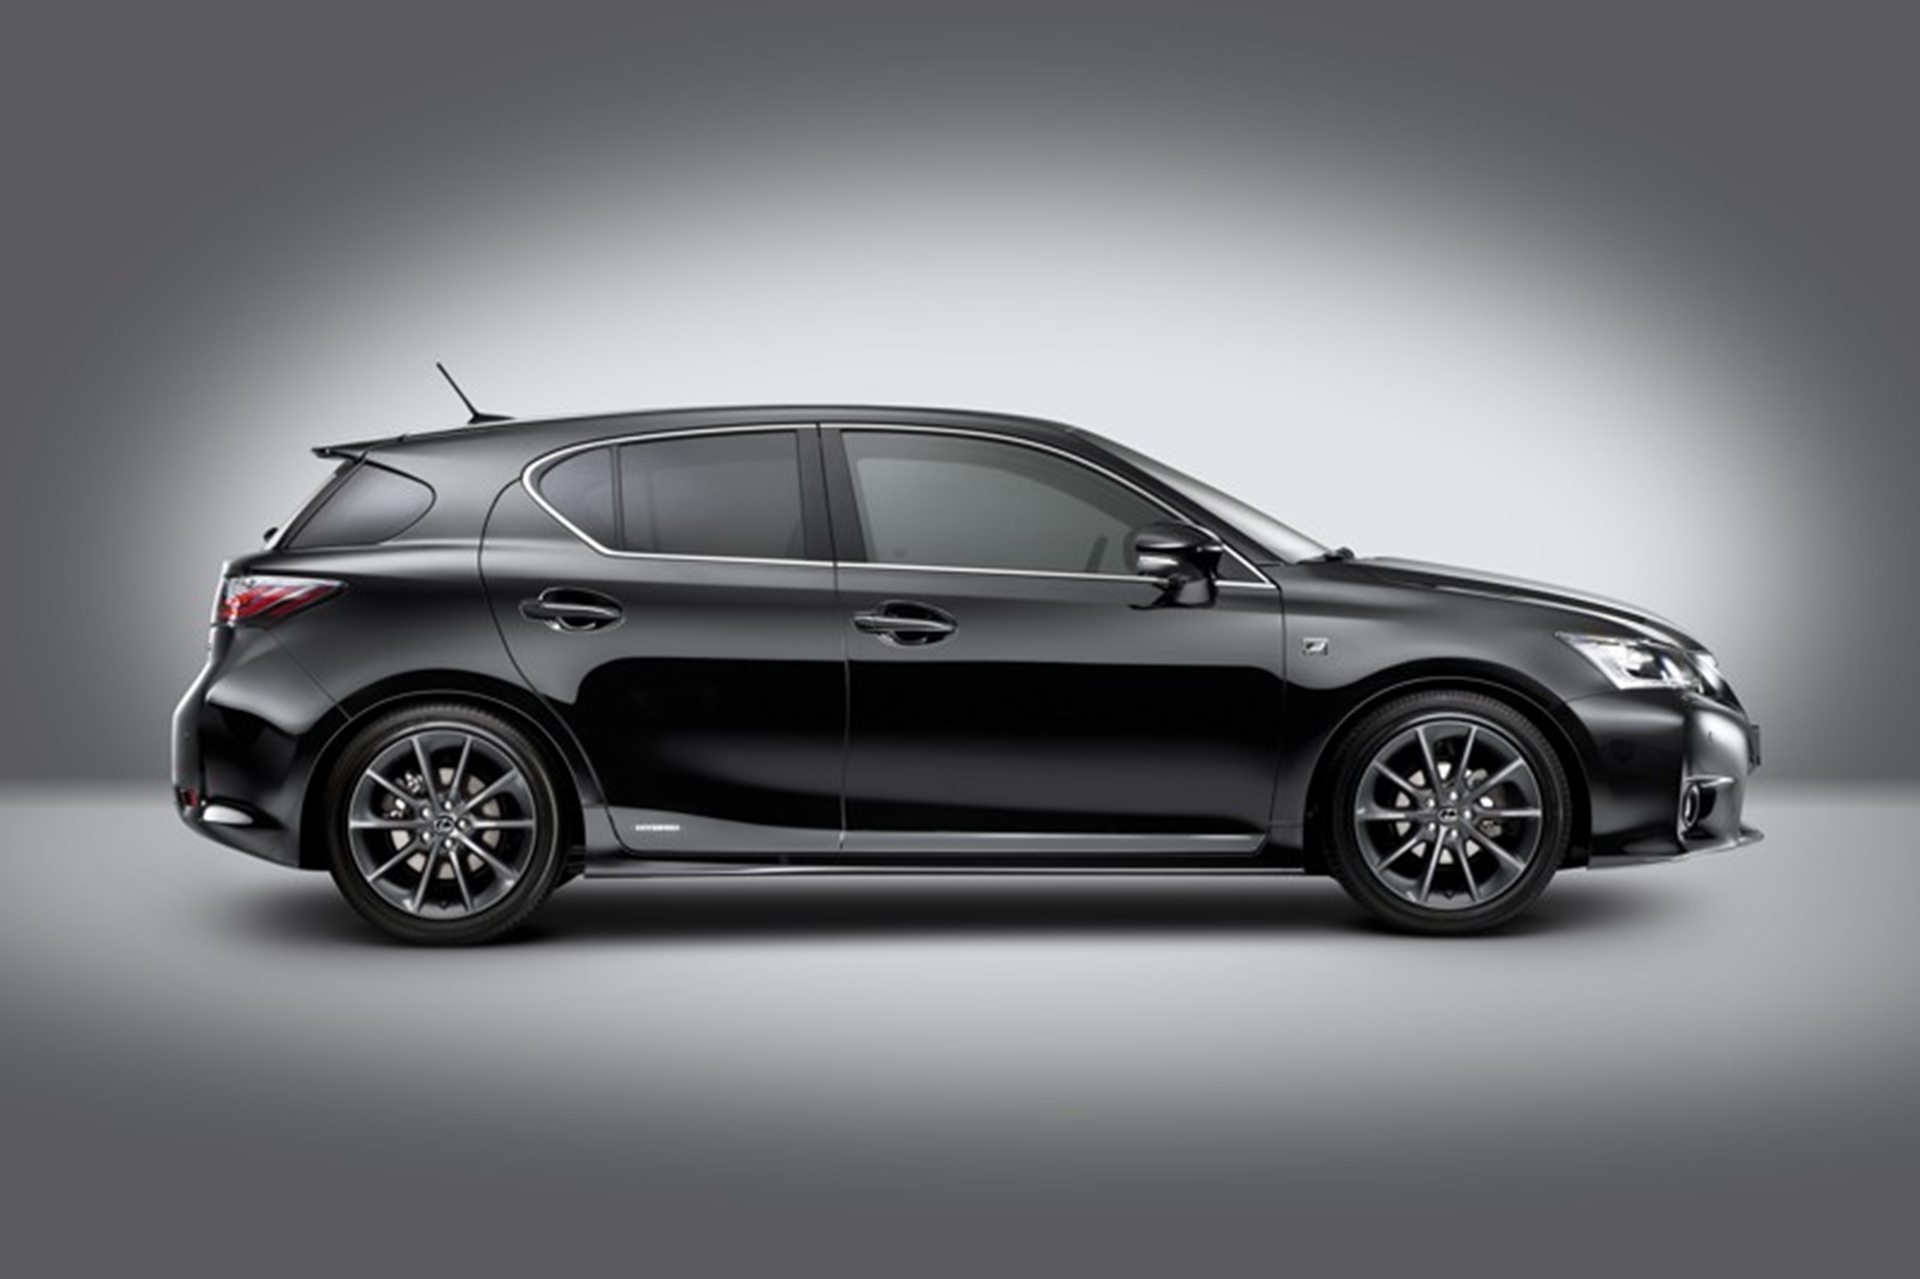 Lexus fires up the new CT 200H F-Sport